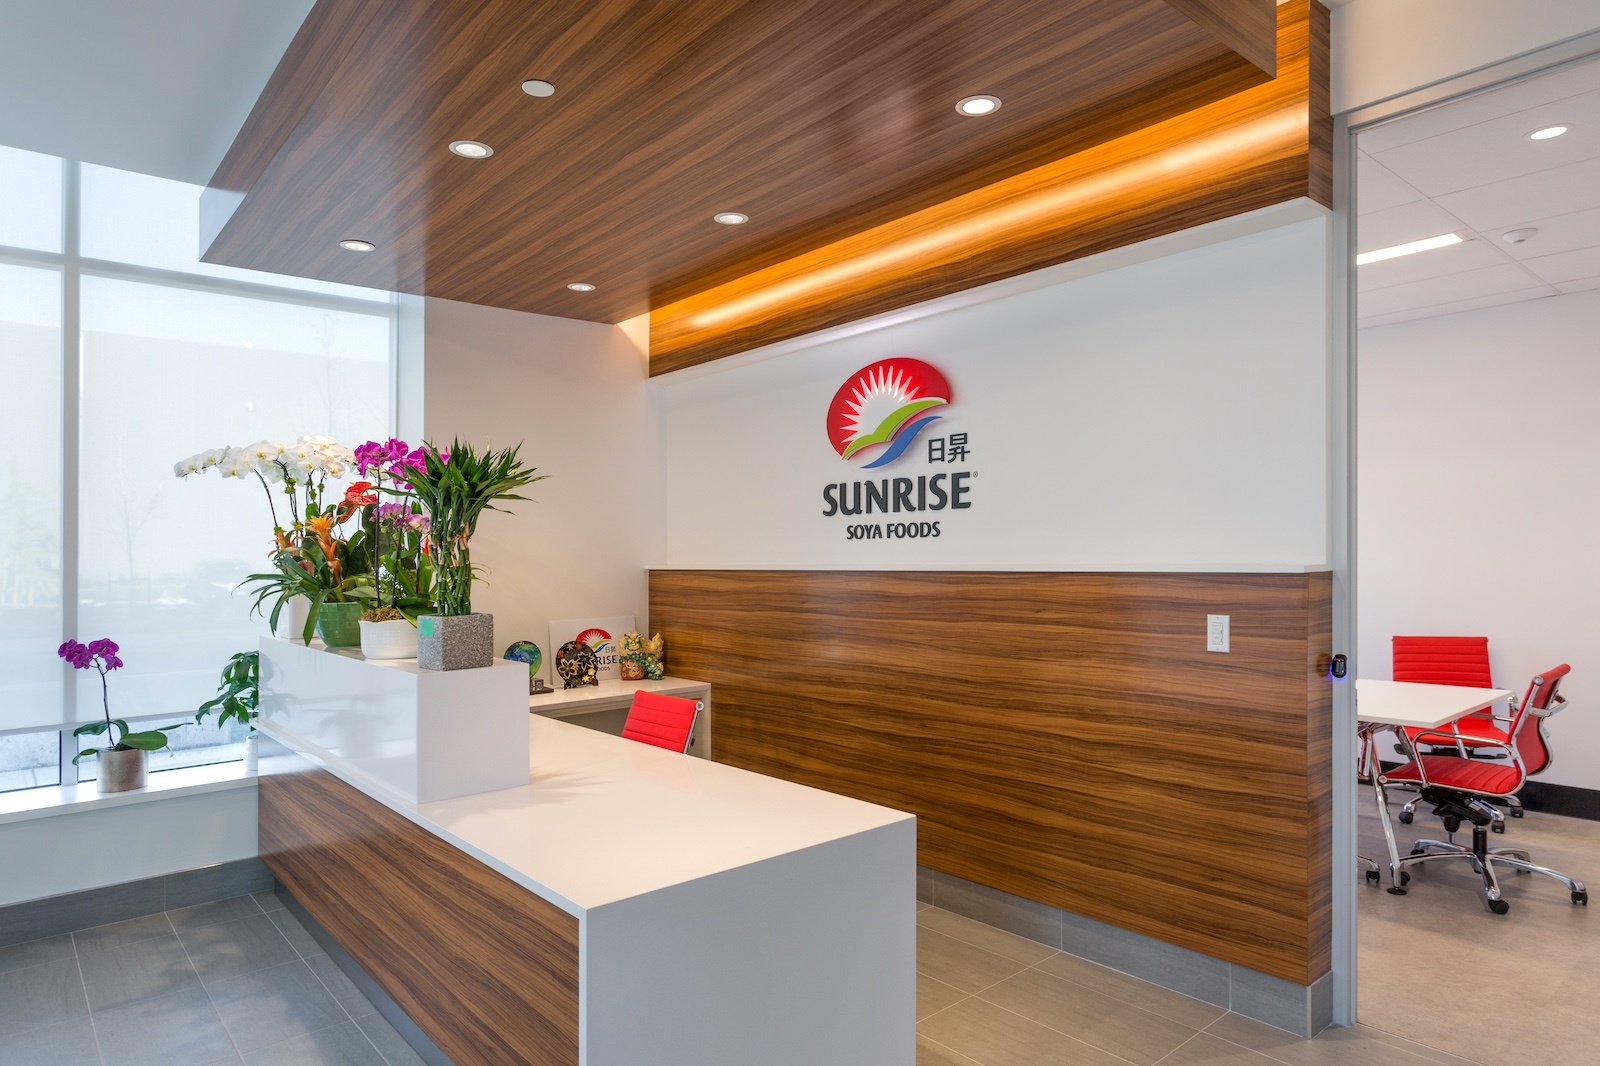 Completed Commercial Tenant Improvement project by Outline Millwork for Sunrise Soya Head Office featuring custom commercial millwork, custom cabinetry & woodworking.